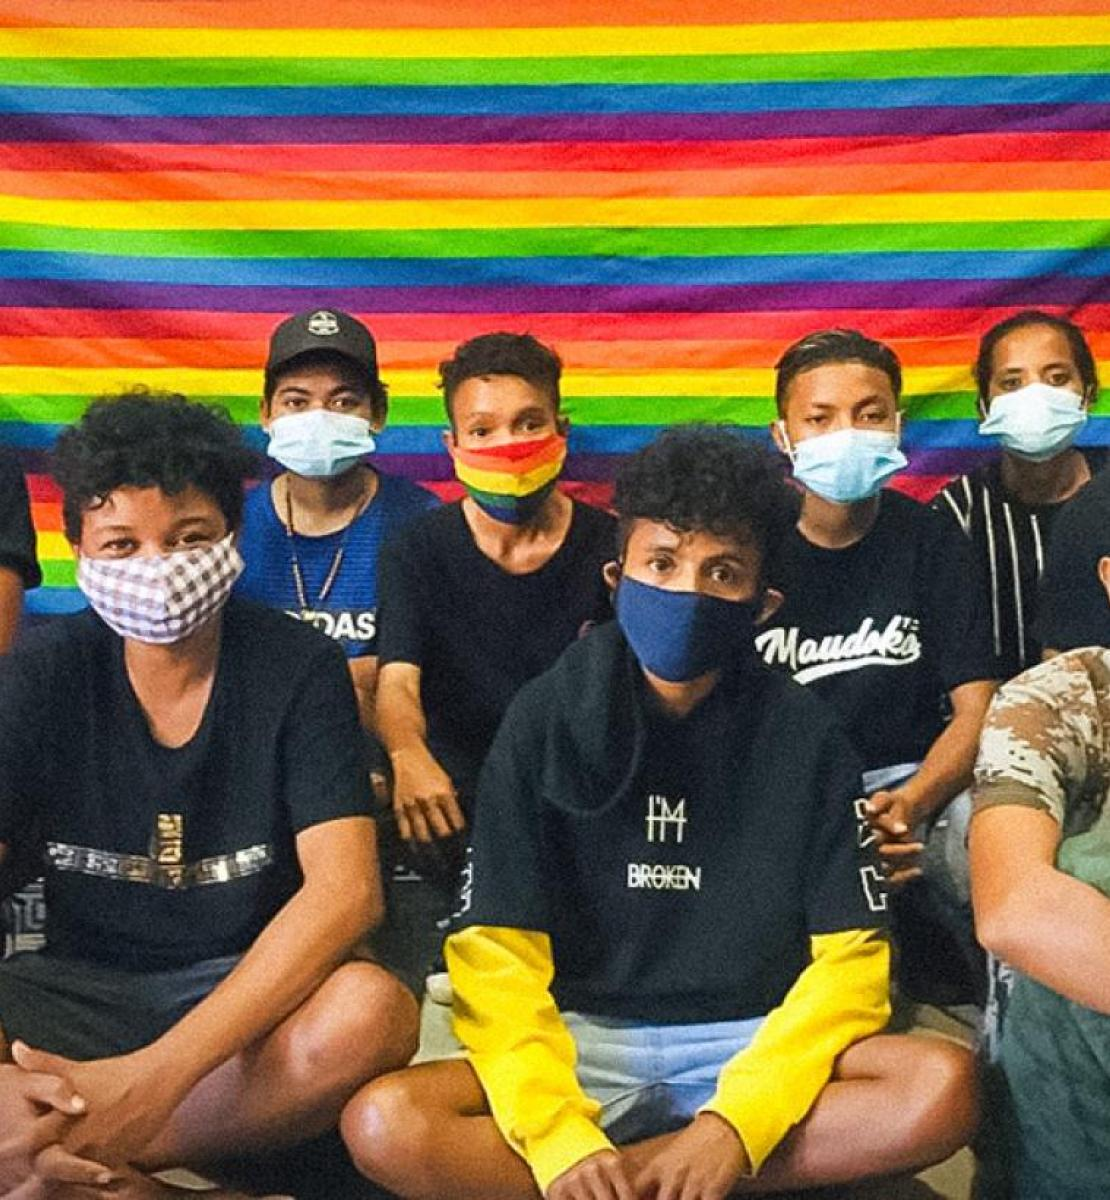 A group of young people wearing masks sit cross-legged in front of a rainbow-coloured flag.